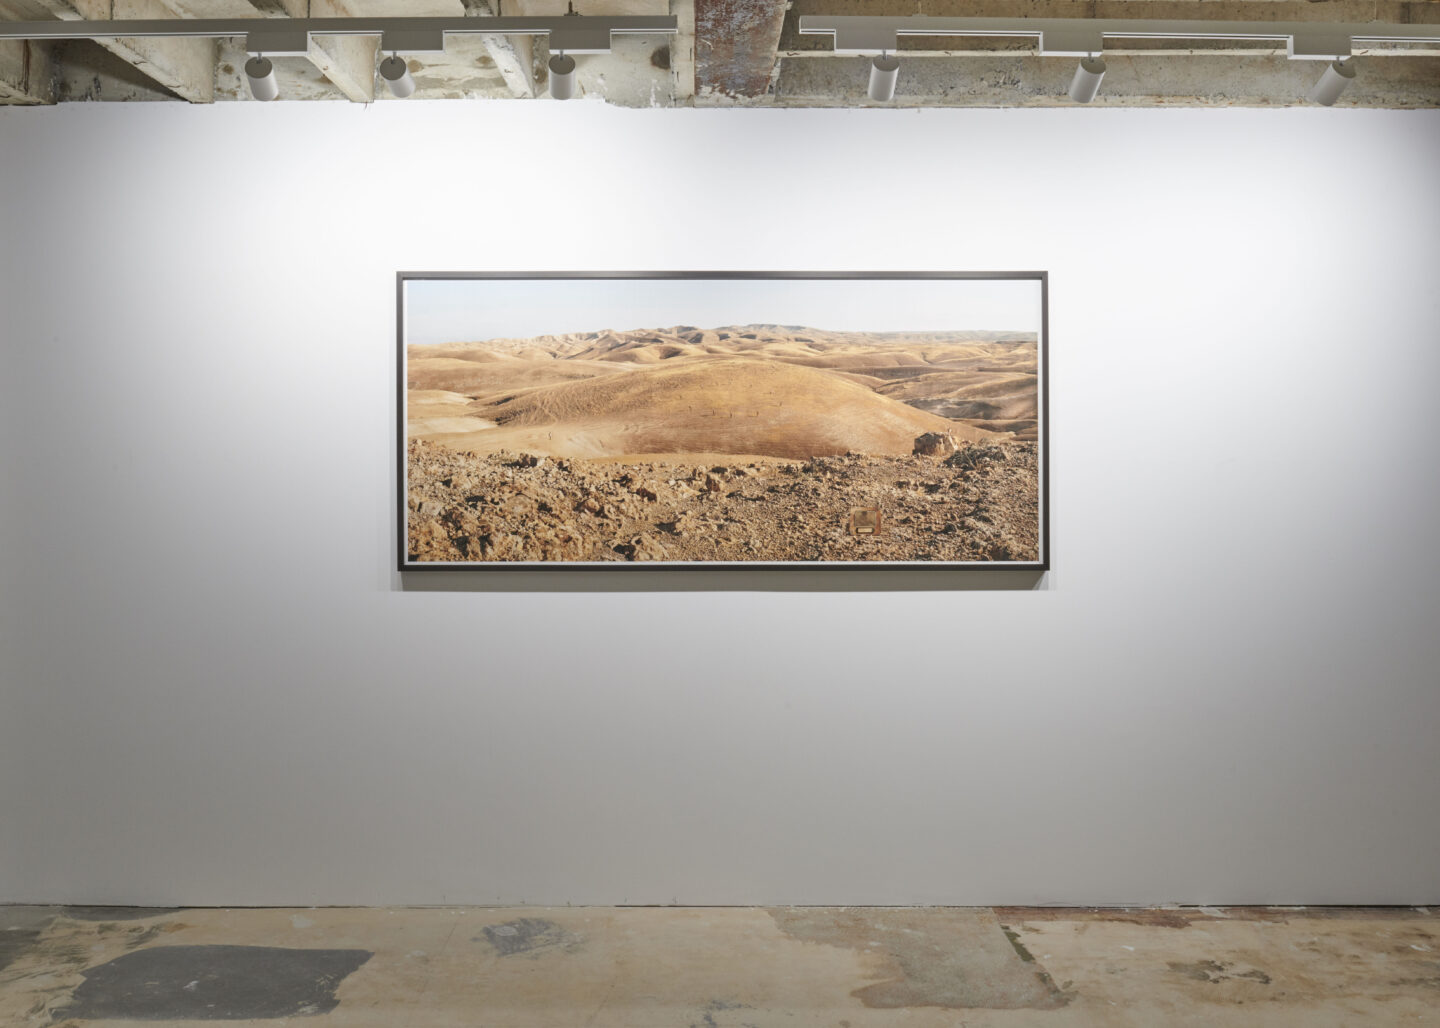 Exhibition View Yuval Yairi Soloshow «Cyphers & Cypresses; view on Survey #3, 2019» at Fabienne Levy, Lausanne, 2019 / Photo: Guillaume Baeriswyl / Courtesy: the artist and Fabienne Levy